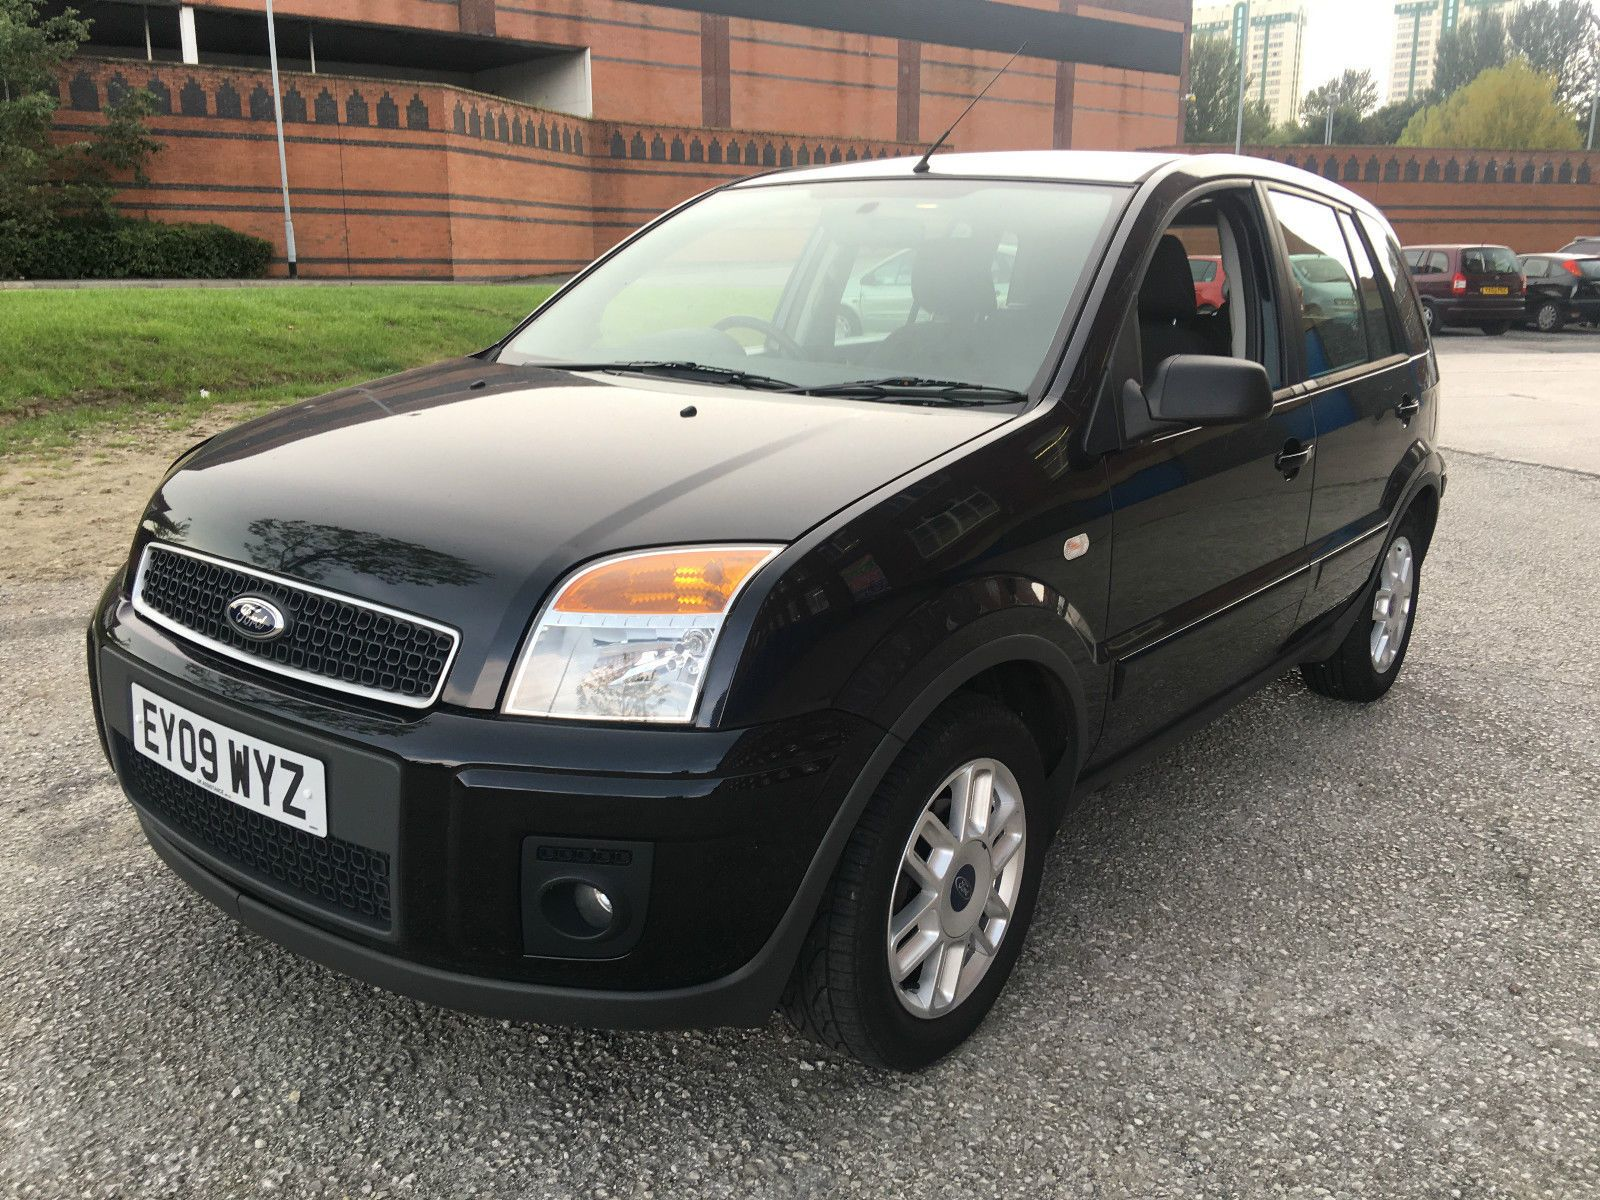 2009 Ford Fusion Zetec Climate 1 6 Tdci Black In Cars Motorcycles